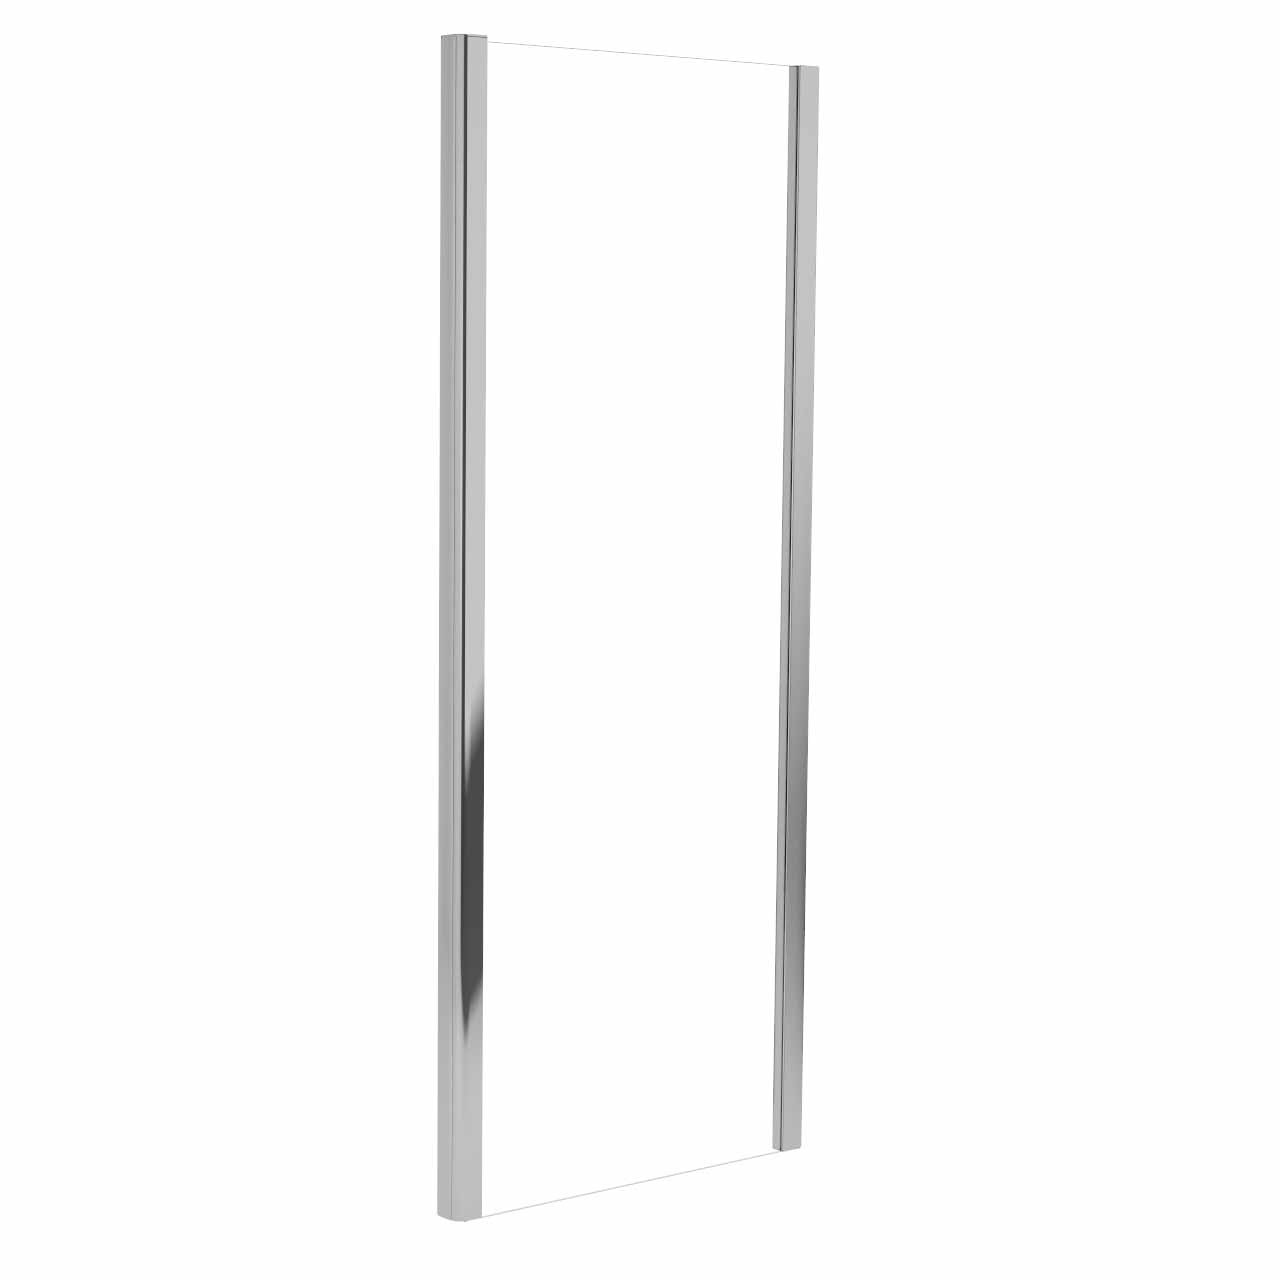 Series 8 Plus 1200 x 760 Sliding Door Enclosure